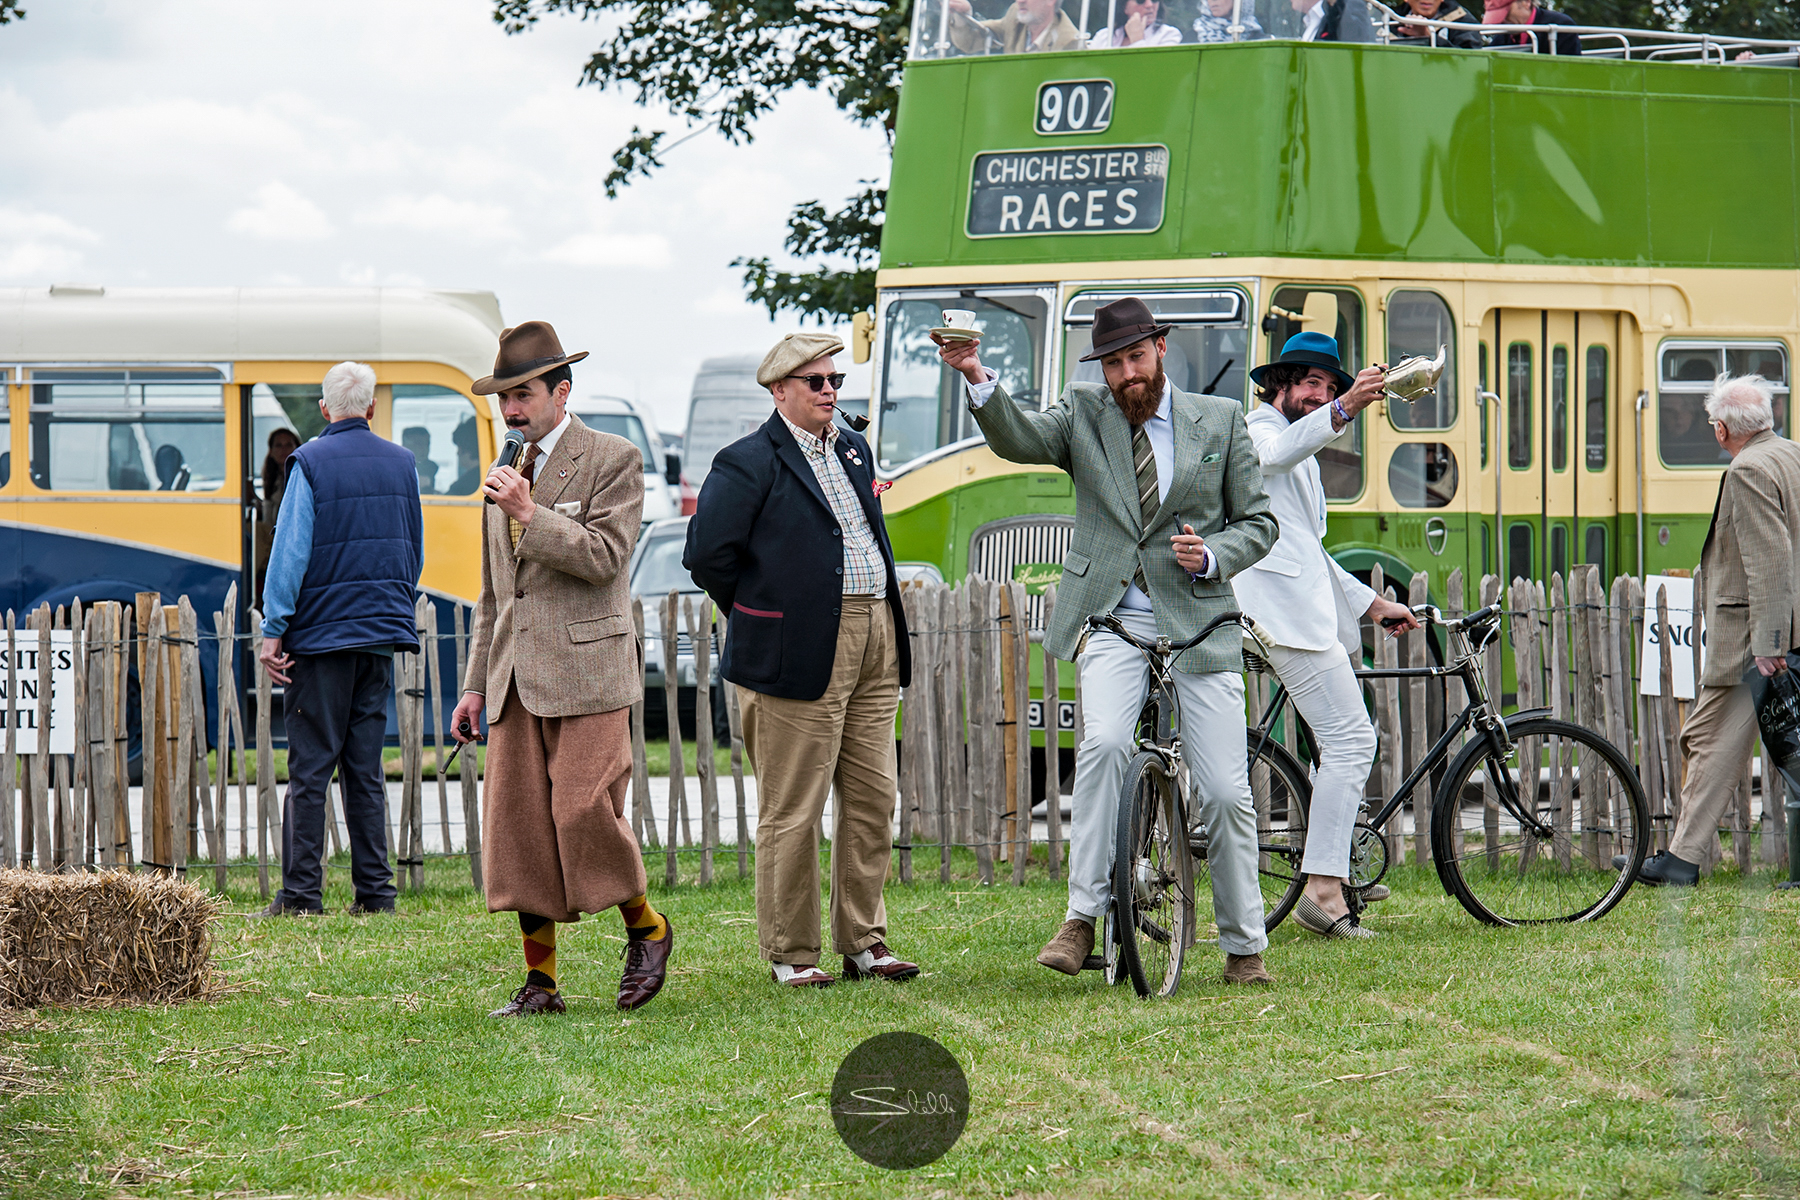 Stella Scordellis Goodwood Revival 2015 7 Watermarked.jpg